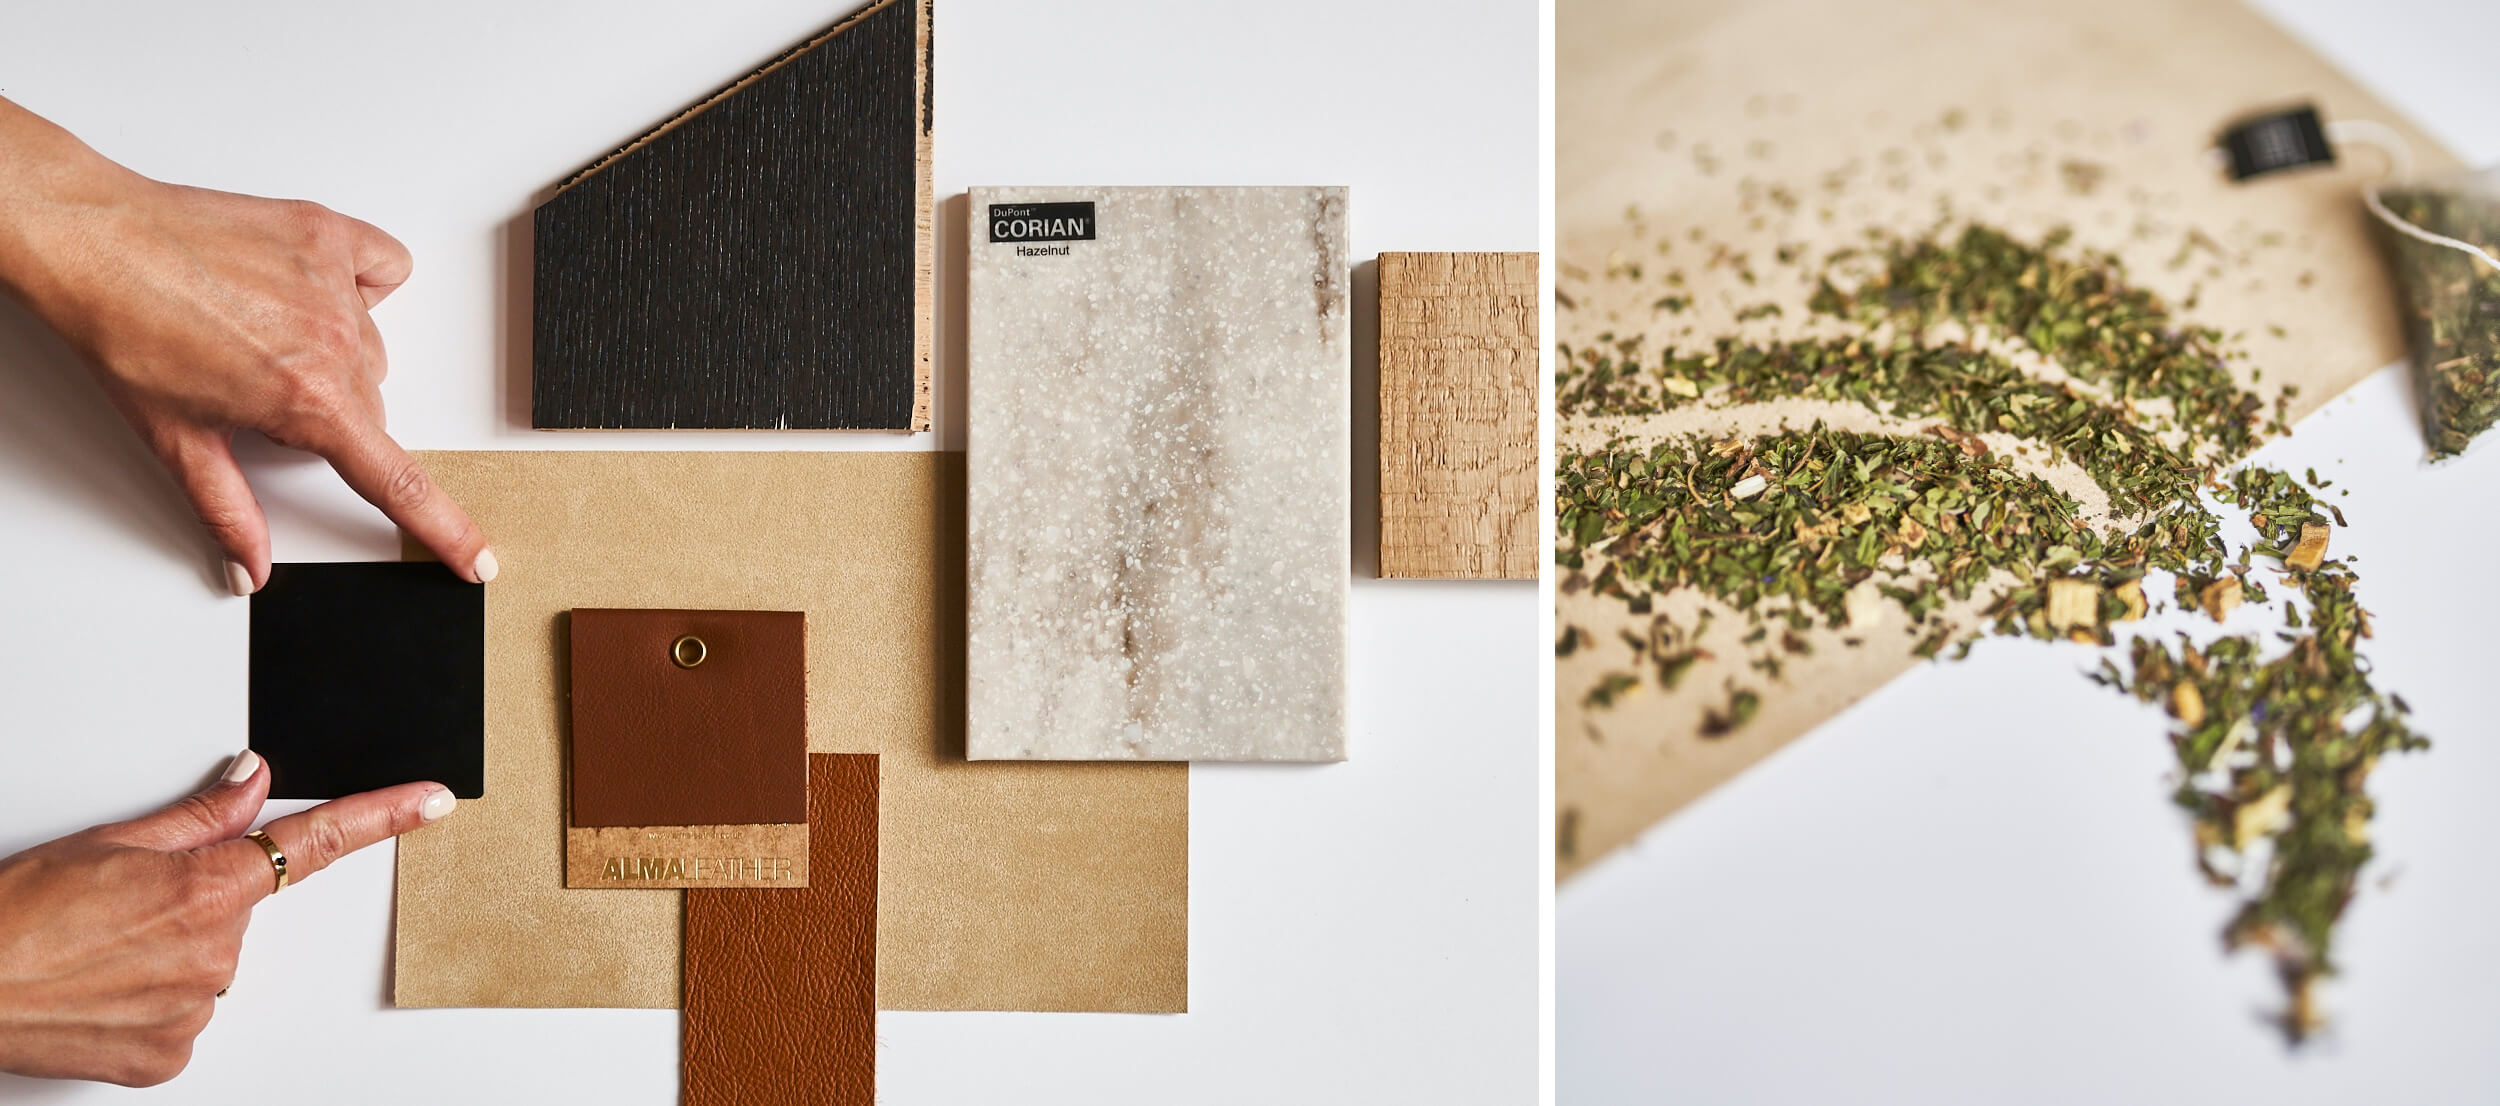 A collection of material swatches